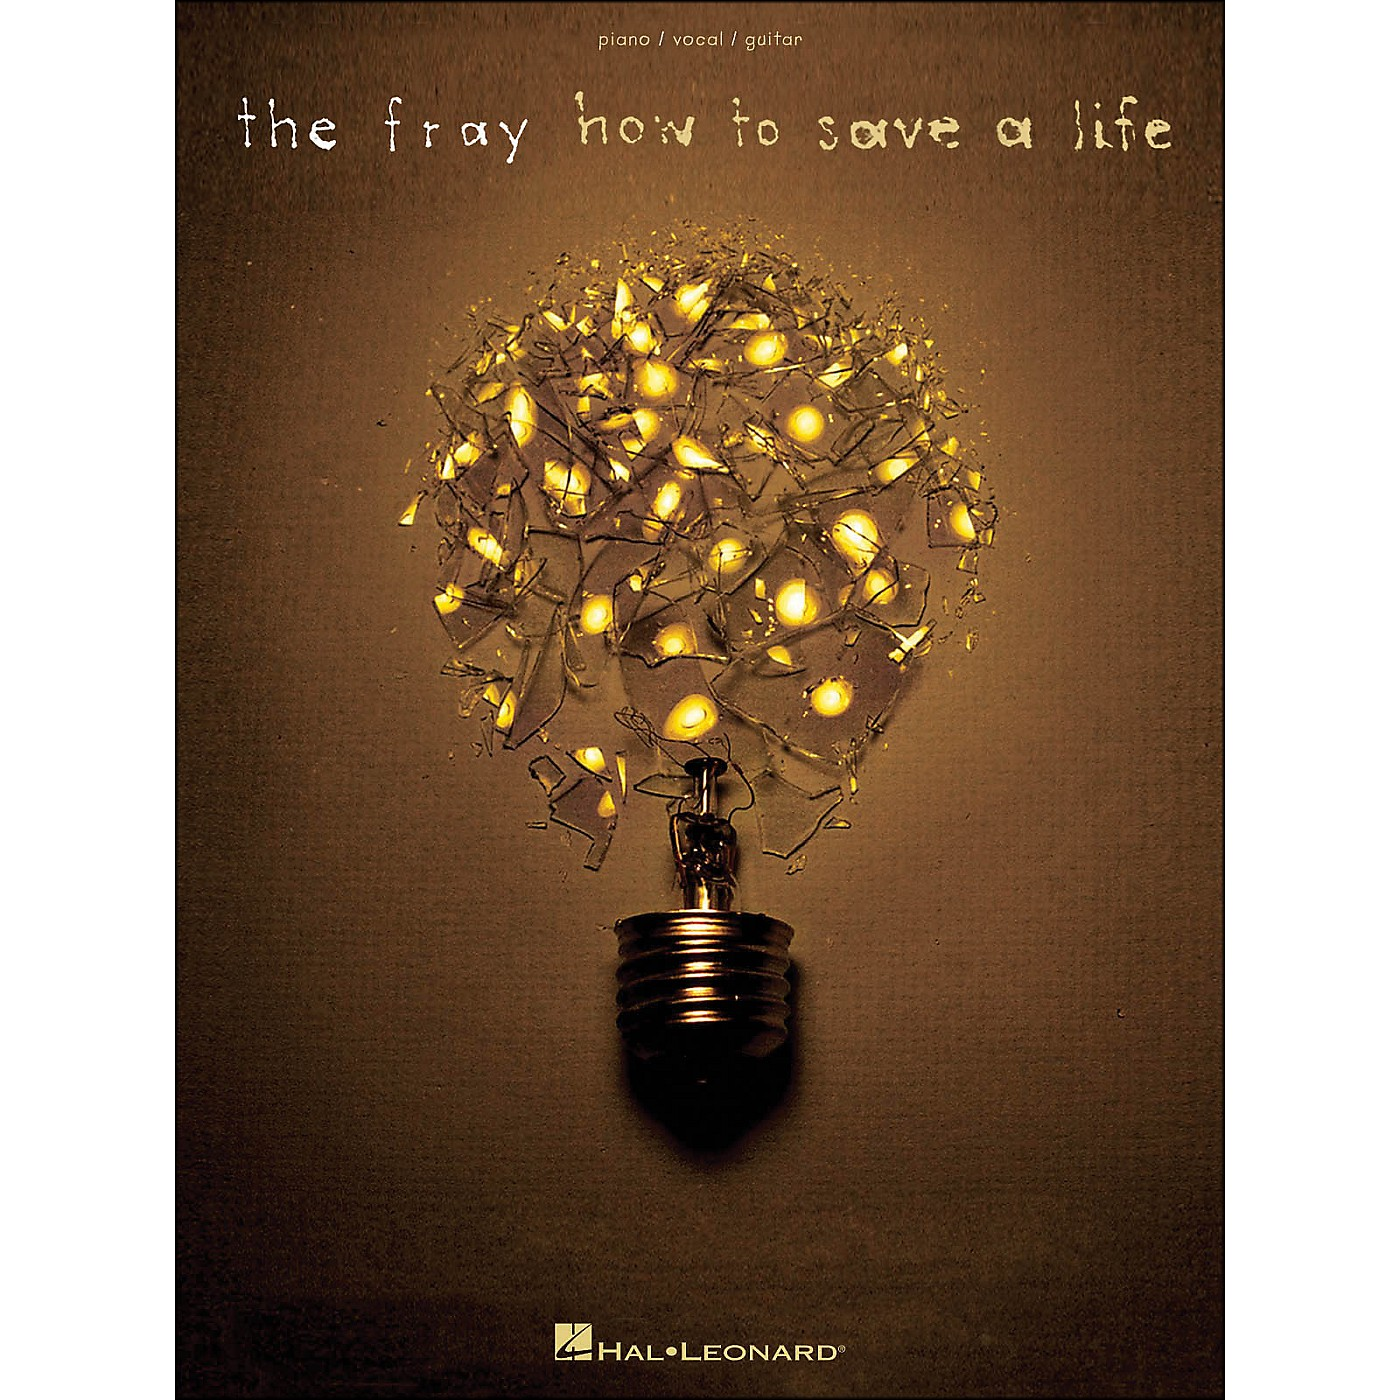 Hal Leonard The Fray How To Save A Life arranged for piano, vocal, and guitar (P/V/G) thumbnail